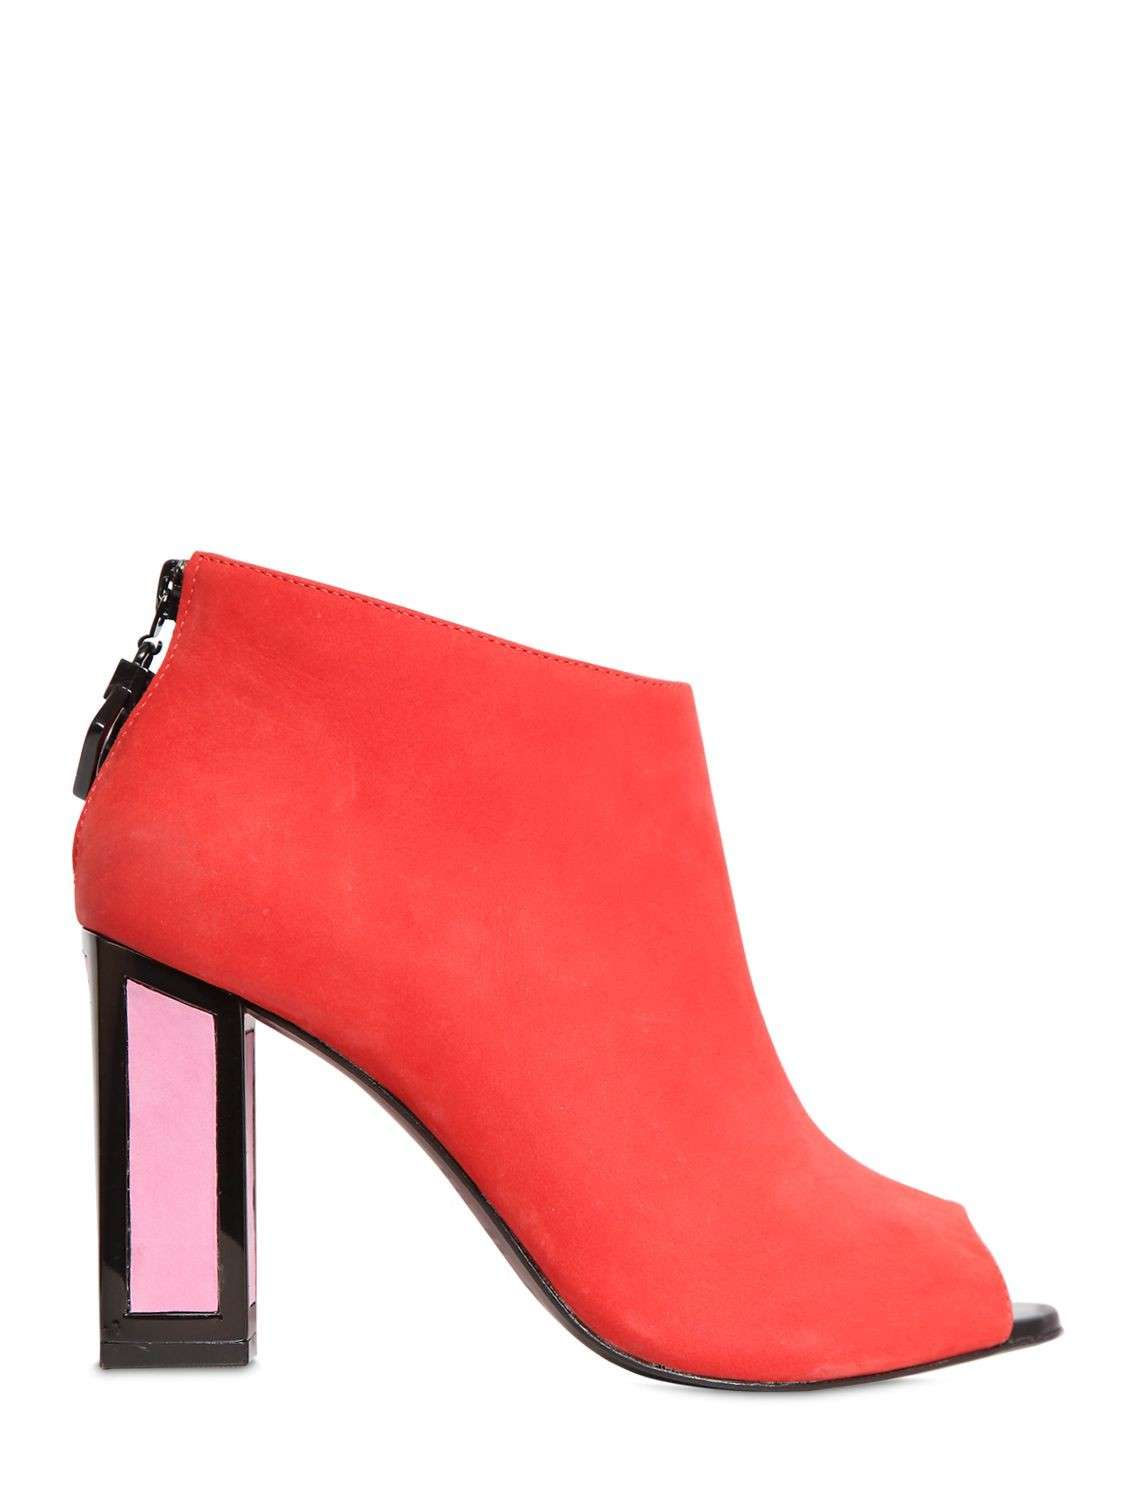 Ankle boots open toe in suede corallo con tacco rosa Kat Maconie